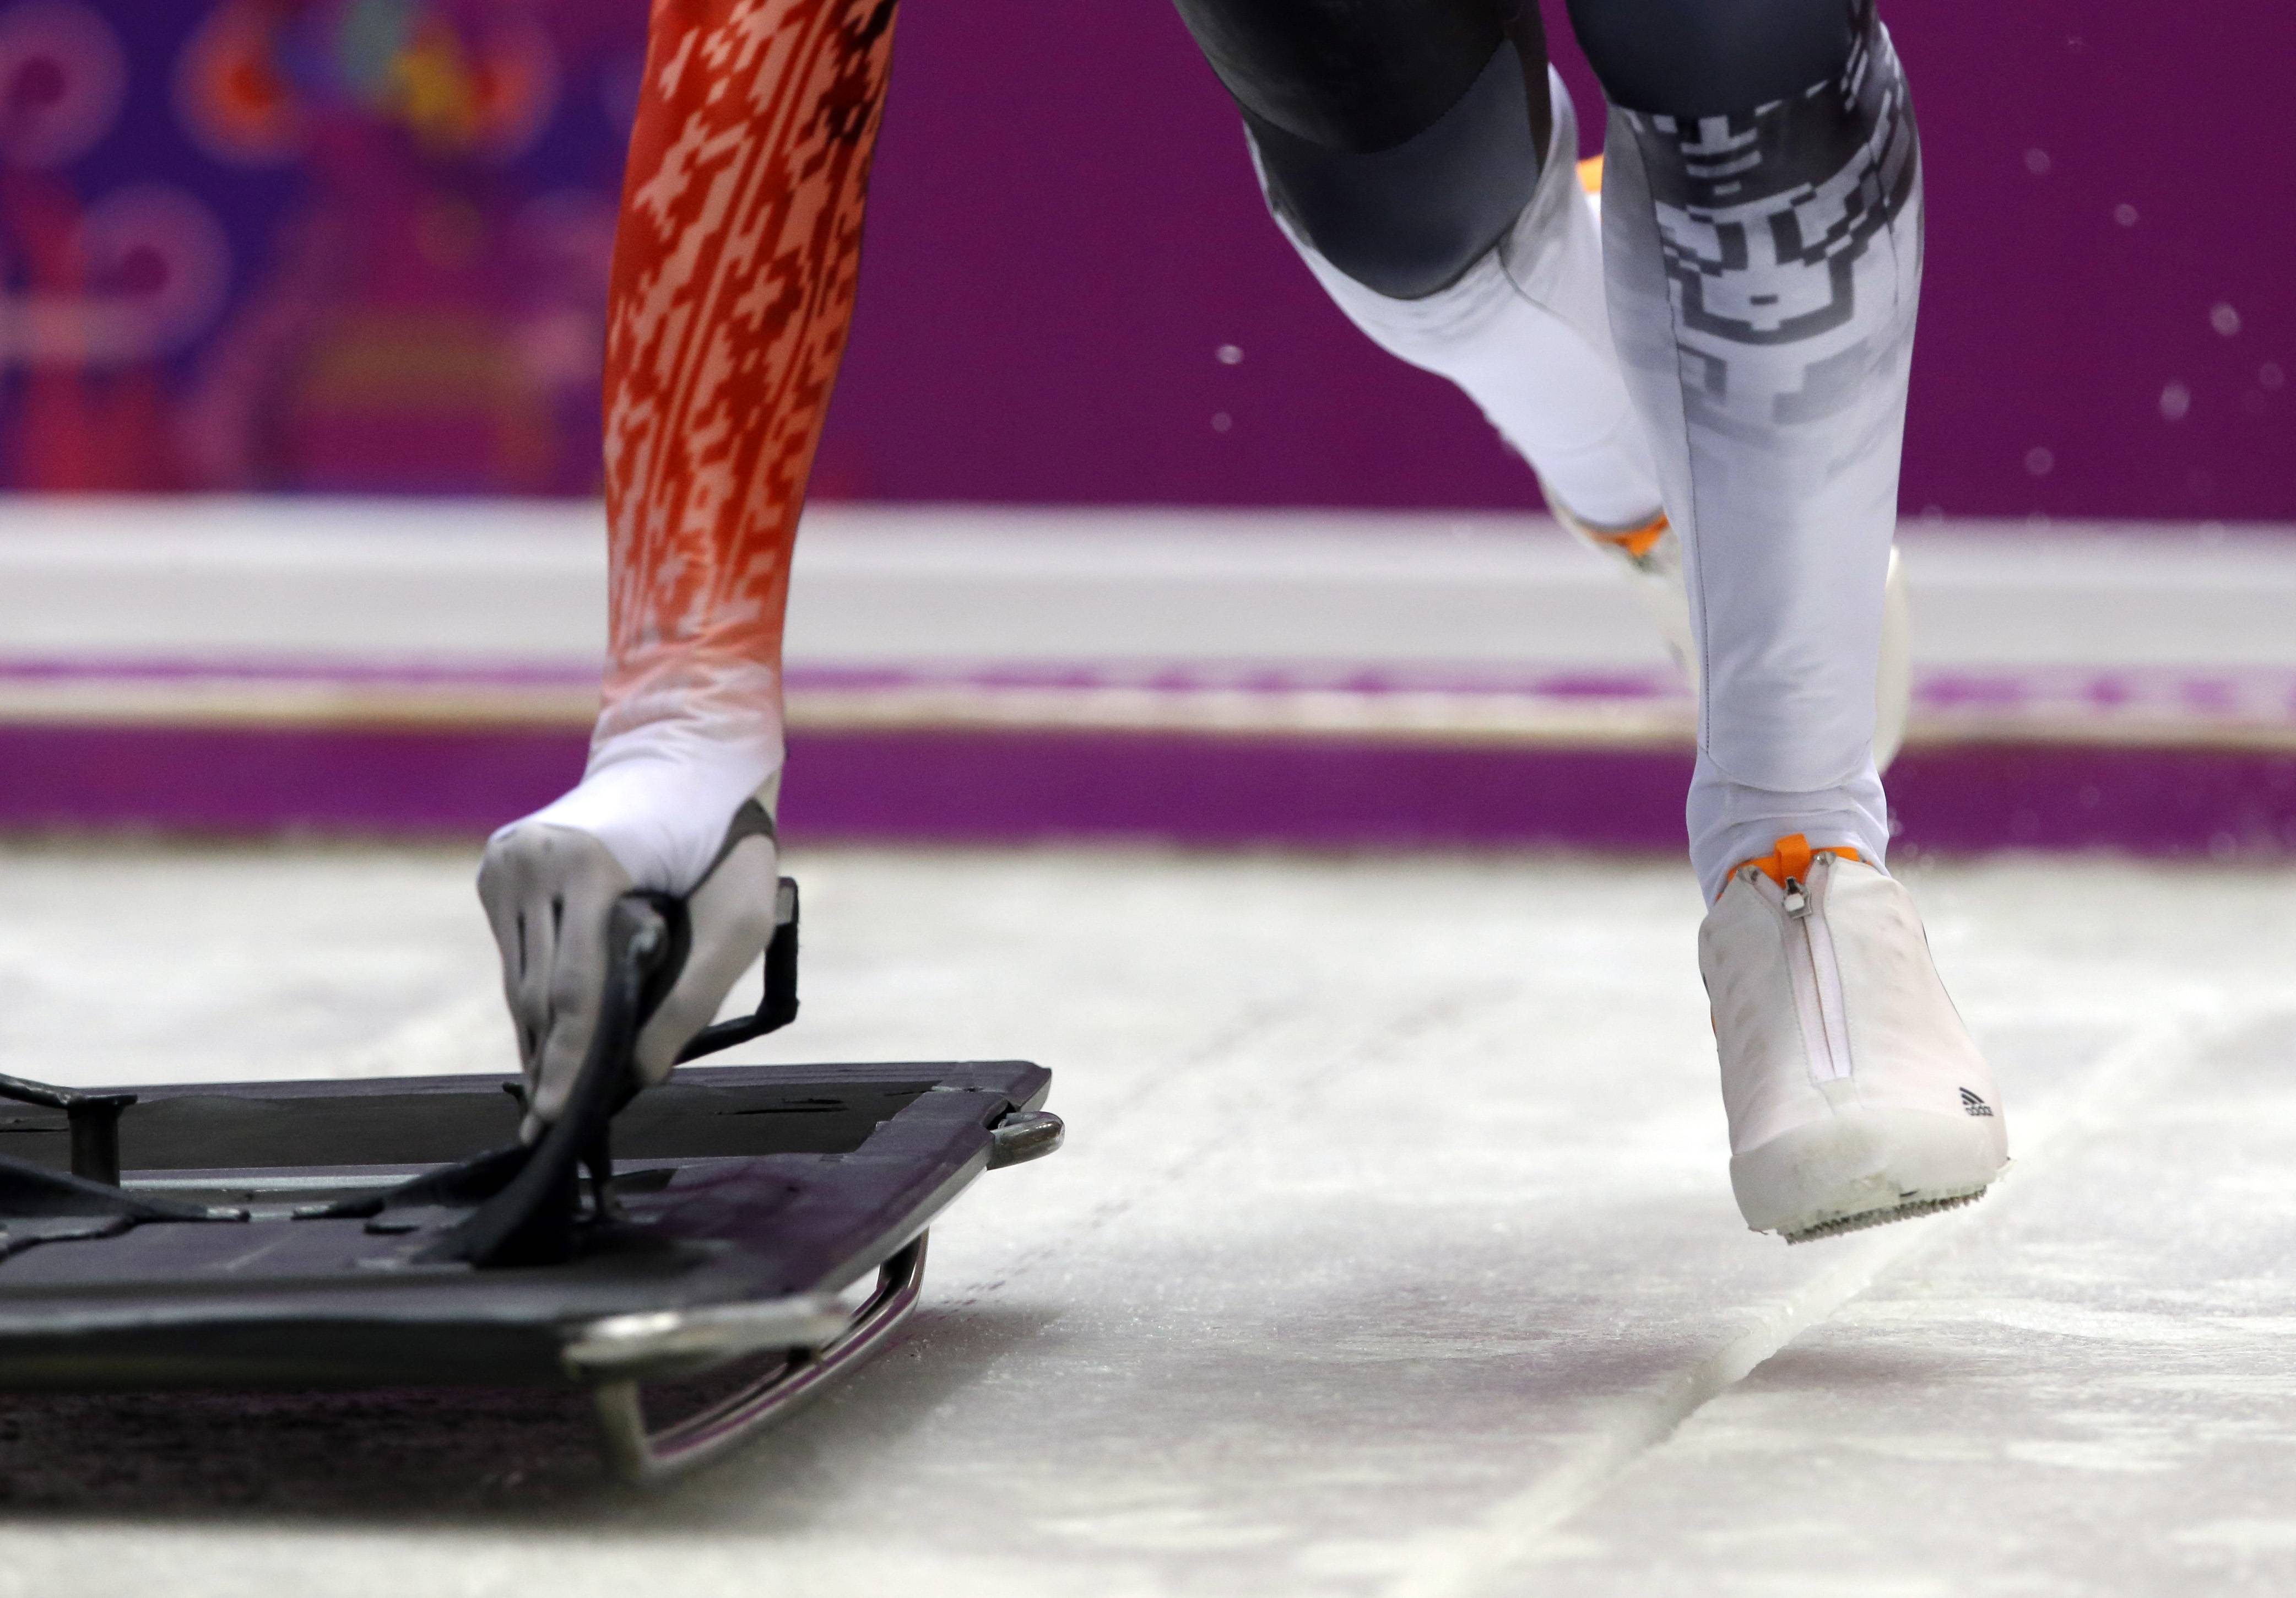 Raphael Maier of Austria starts a run during the men's skeleton training.